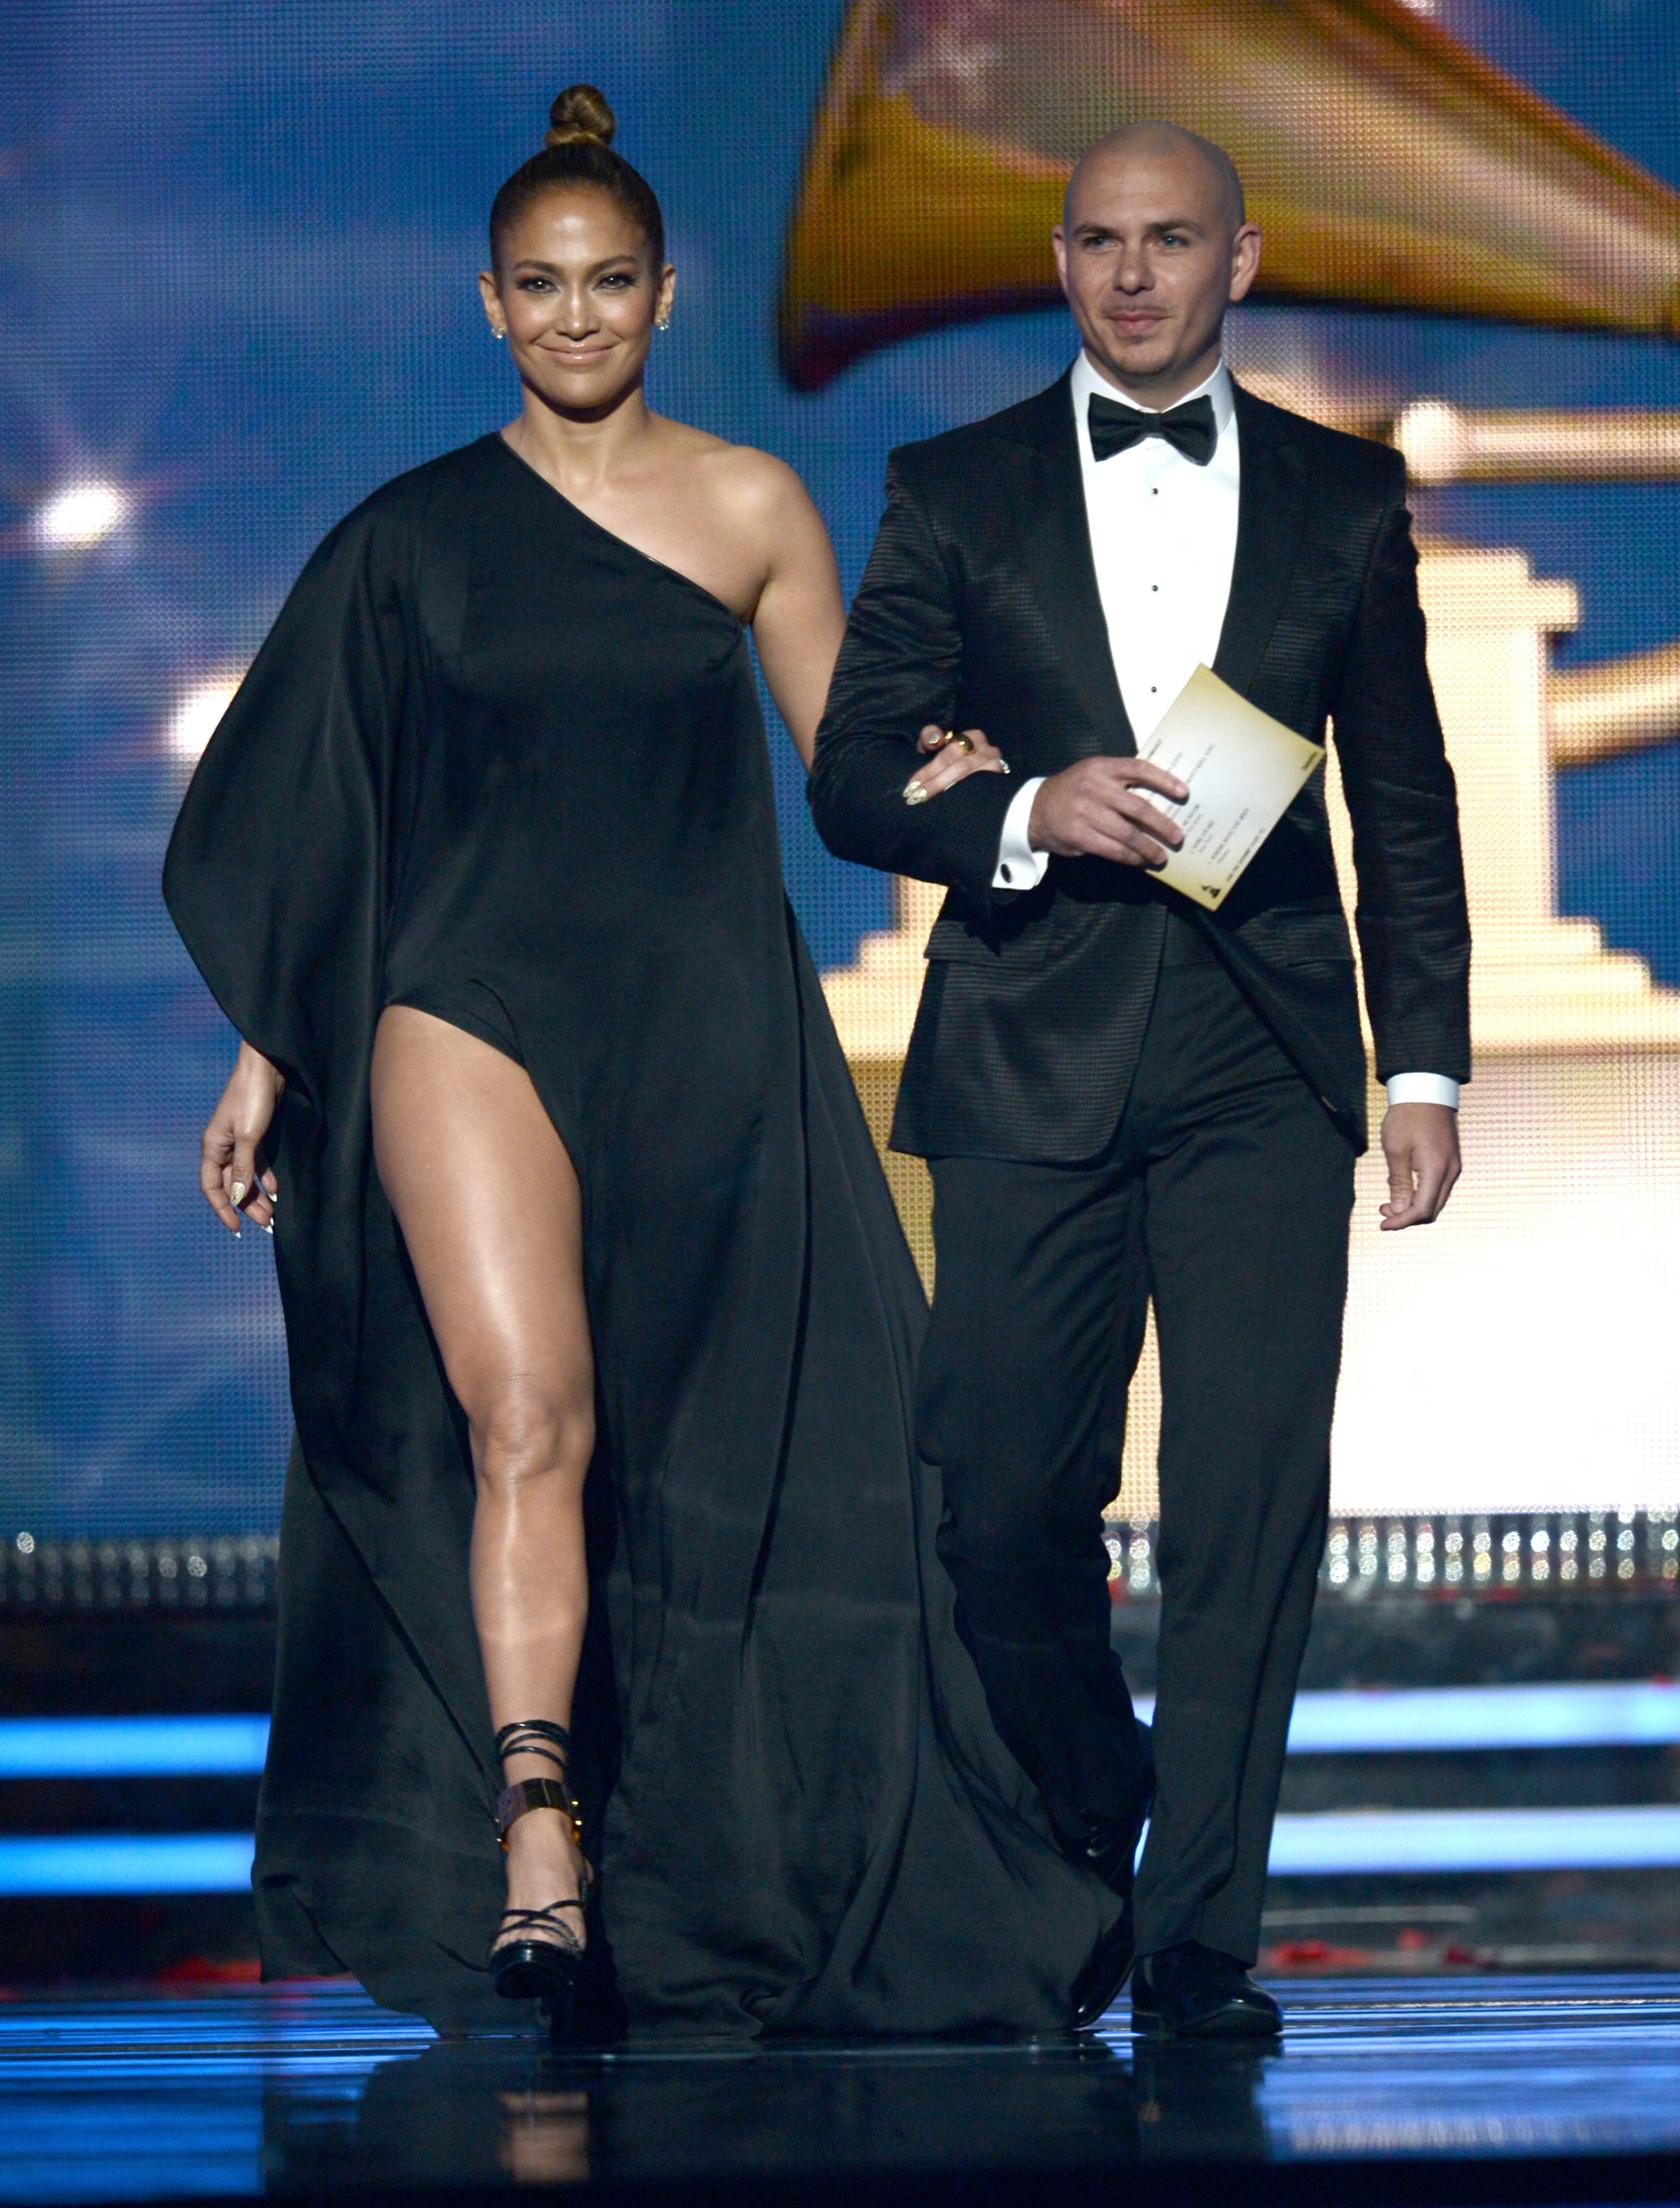 Jennifer Lopez and Pitbull presented together.